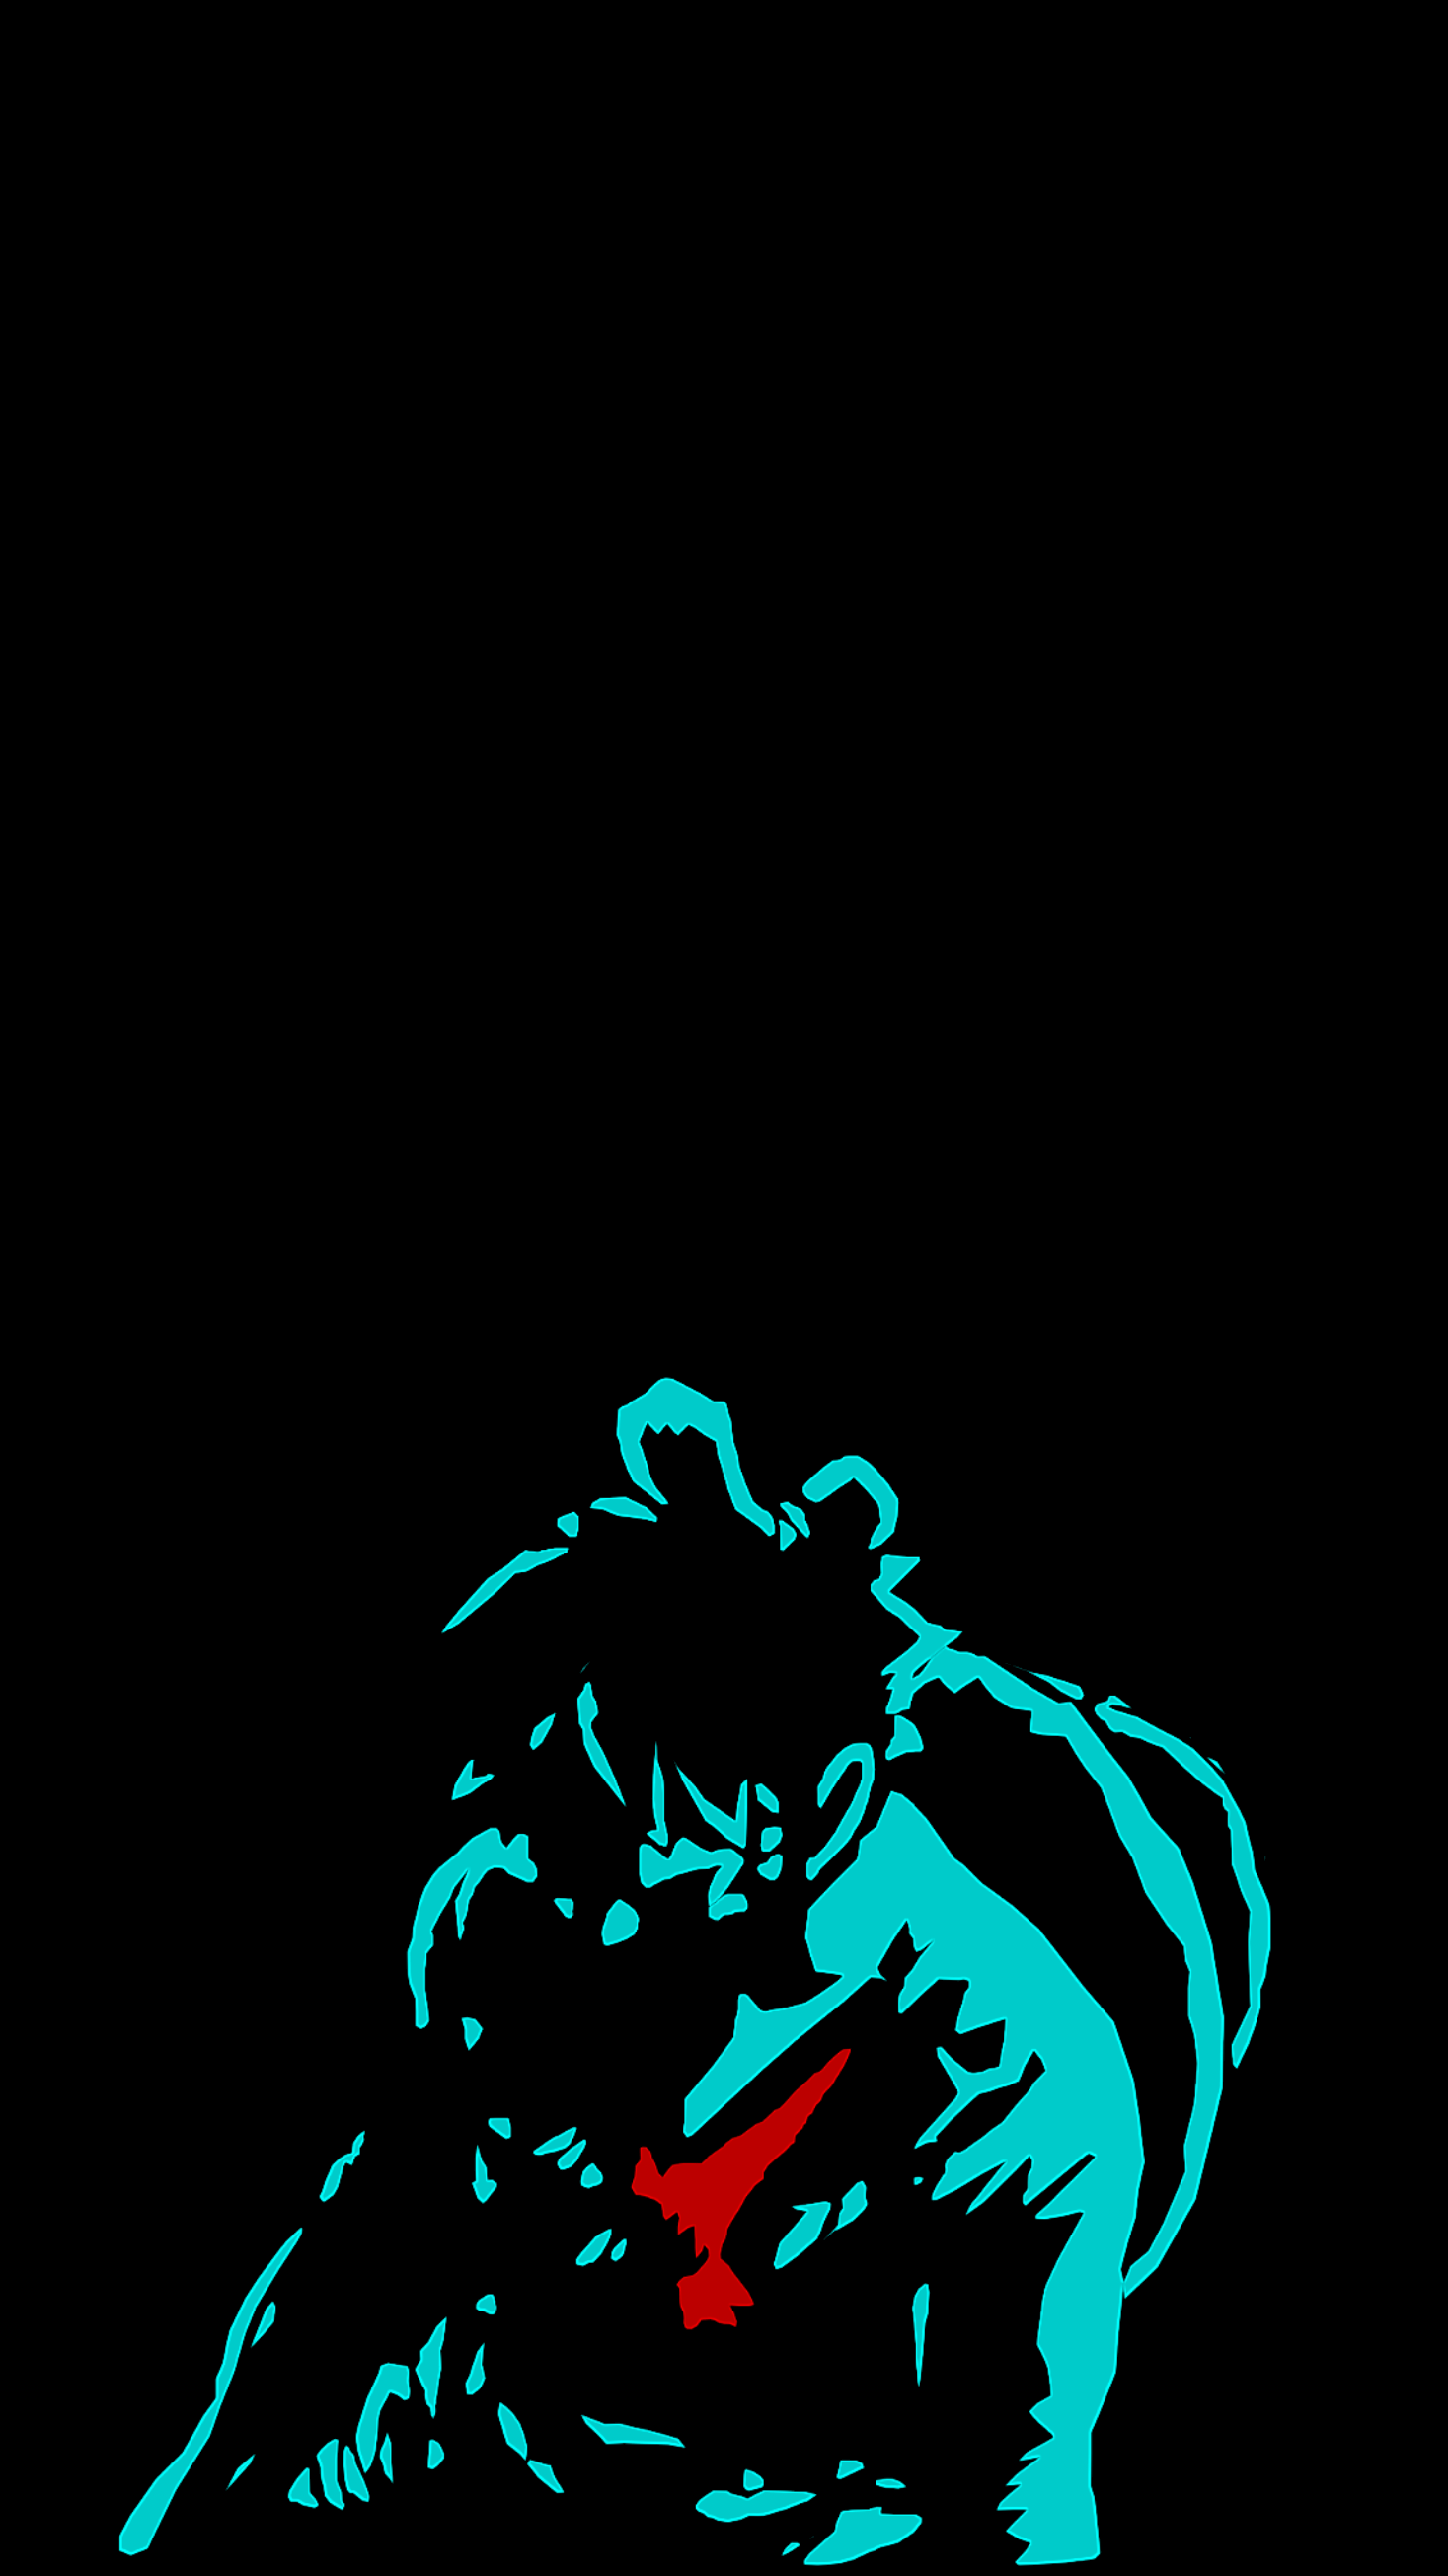 Amoled Luffy Wallpapers - Wallpaper Cave